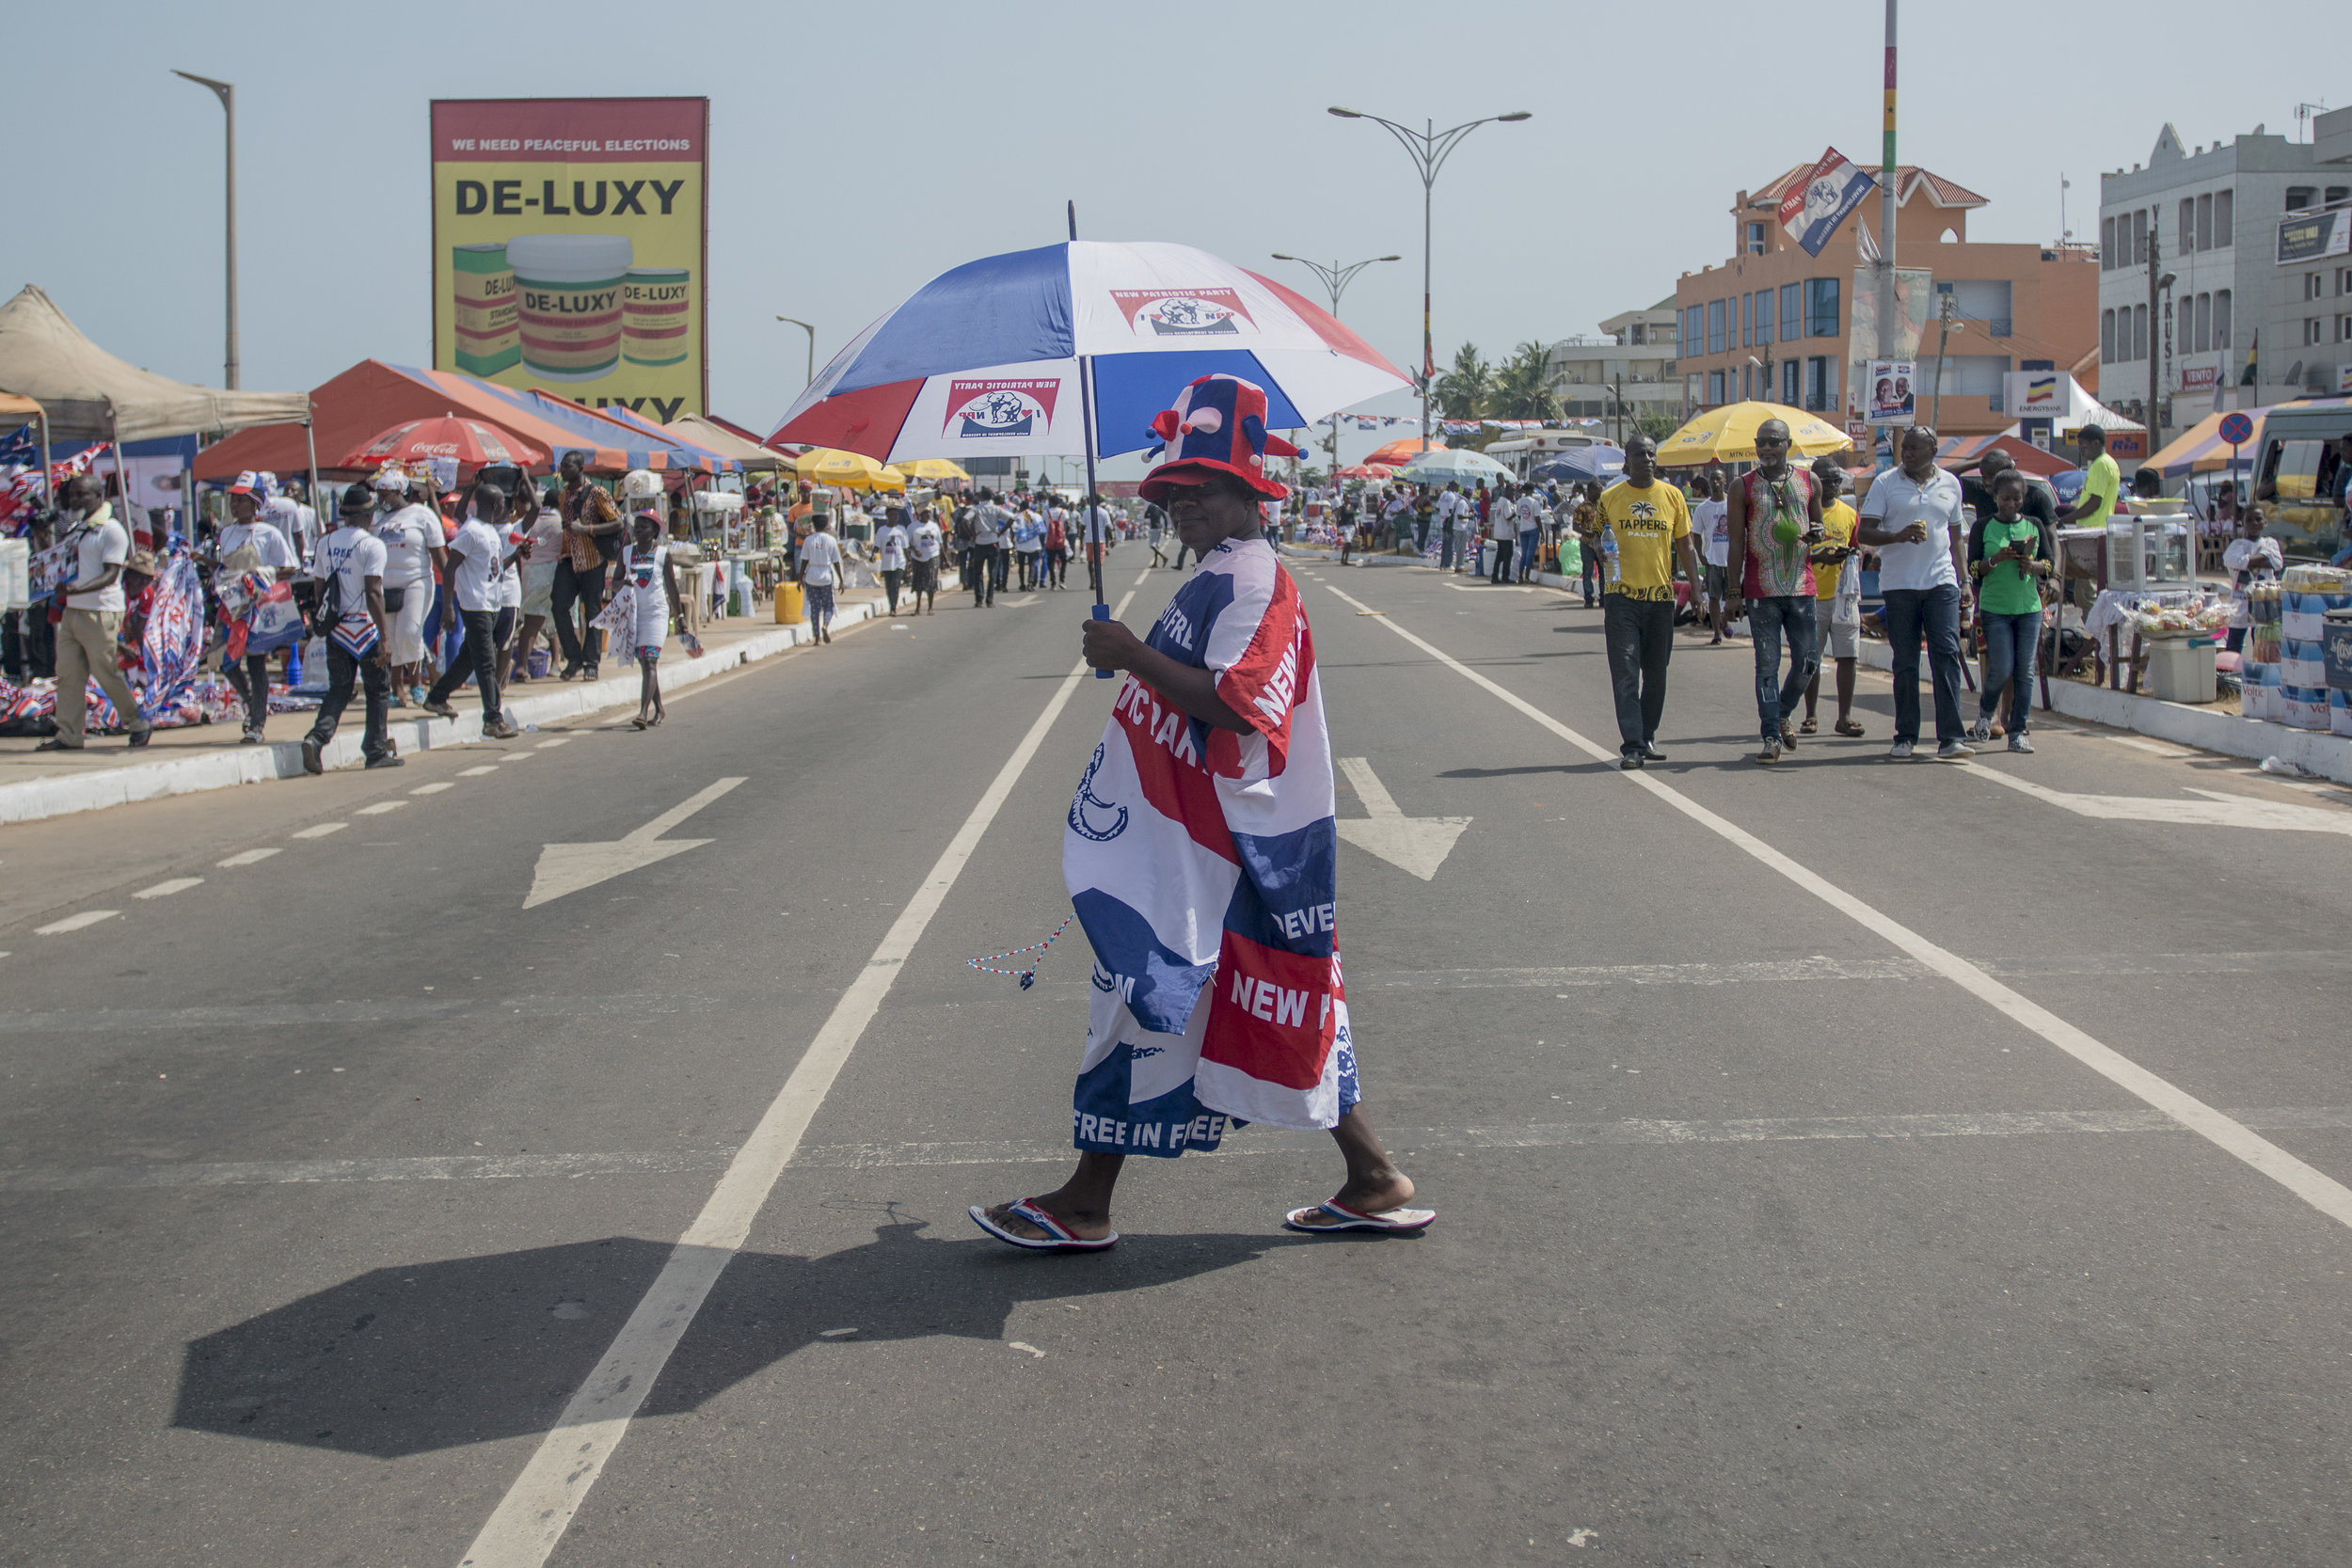 NPP (New Patriotic Party) supporter heading to the last NPP political rally, Grand Finale, in Accra ahead the December 7th General Election